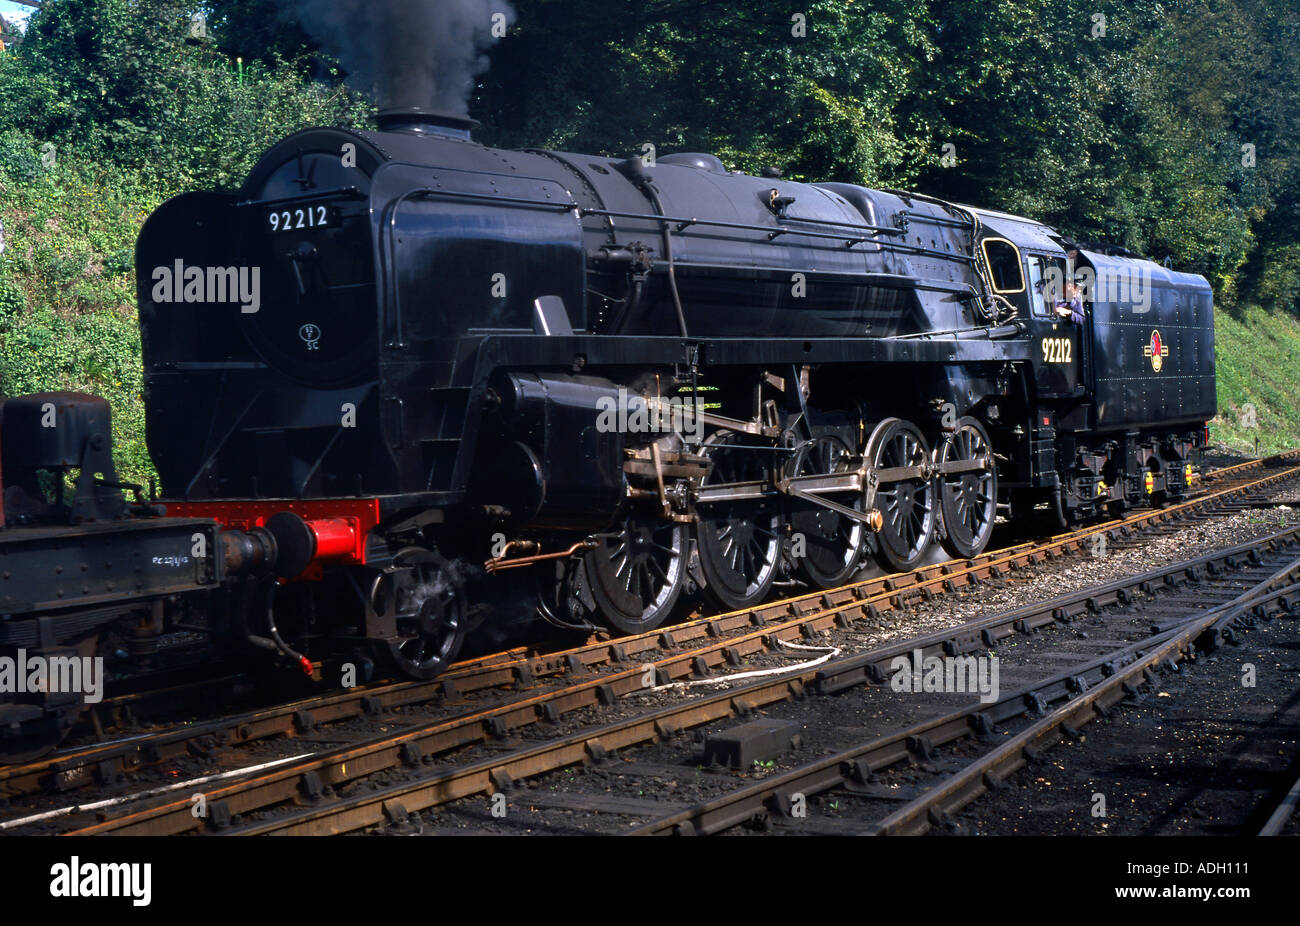 9F class heavy freight steam locomotive at Ropley on the Mid Hants Railway September 2004 - Stock Image